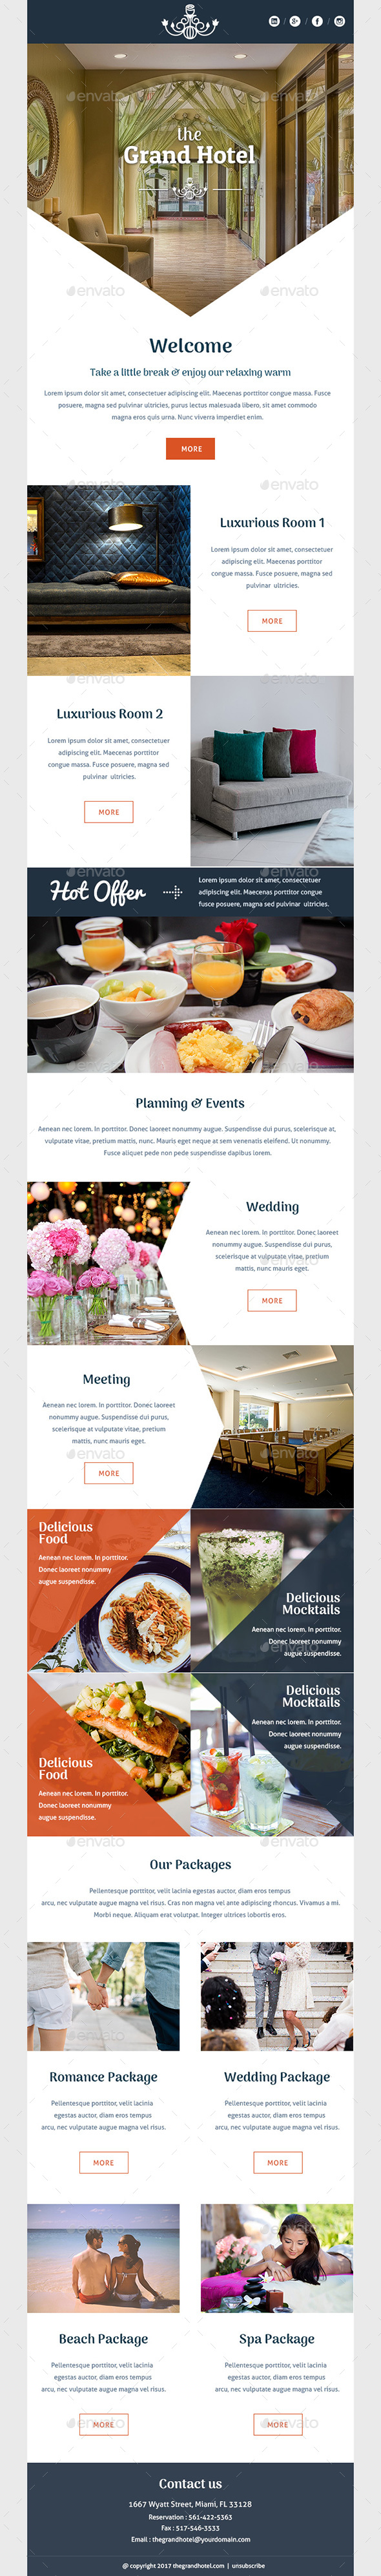 The Grand Hotel - E-newsletters Web Elements